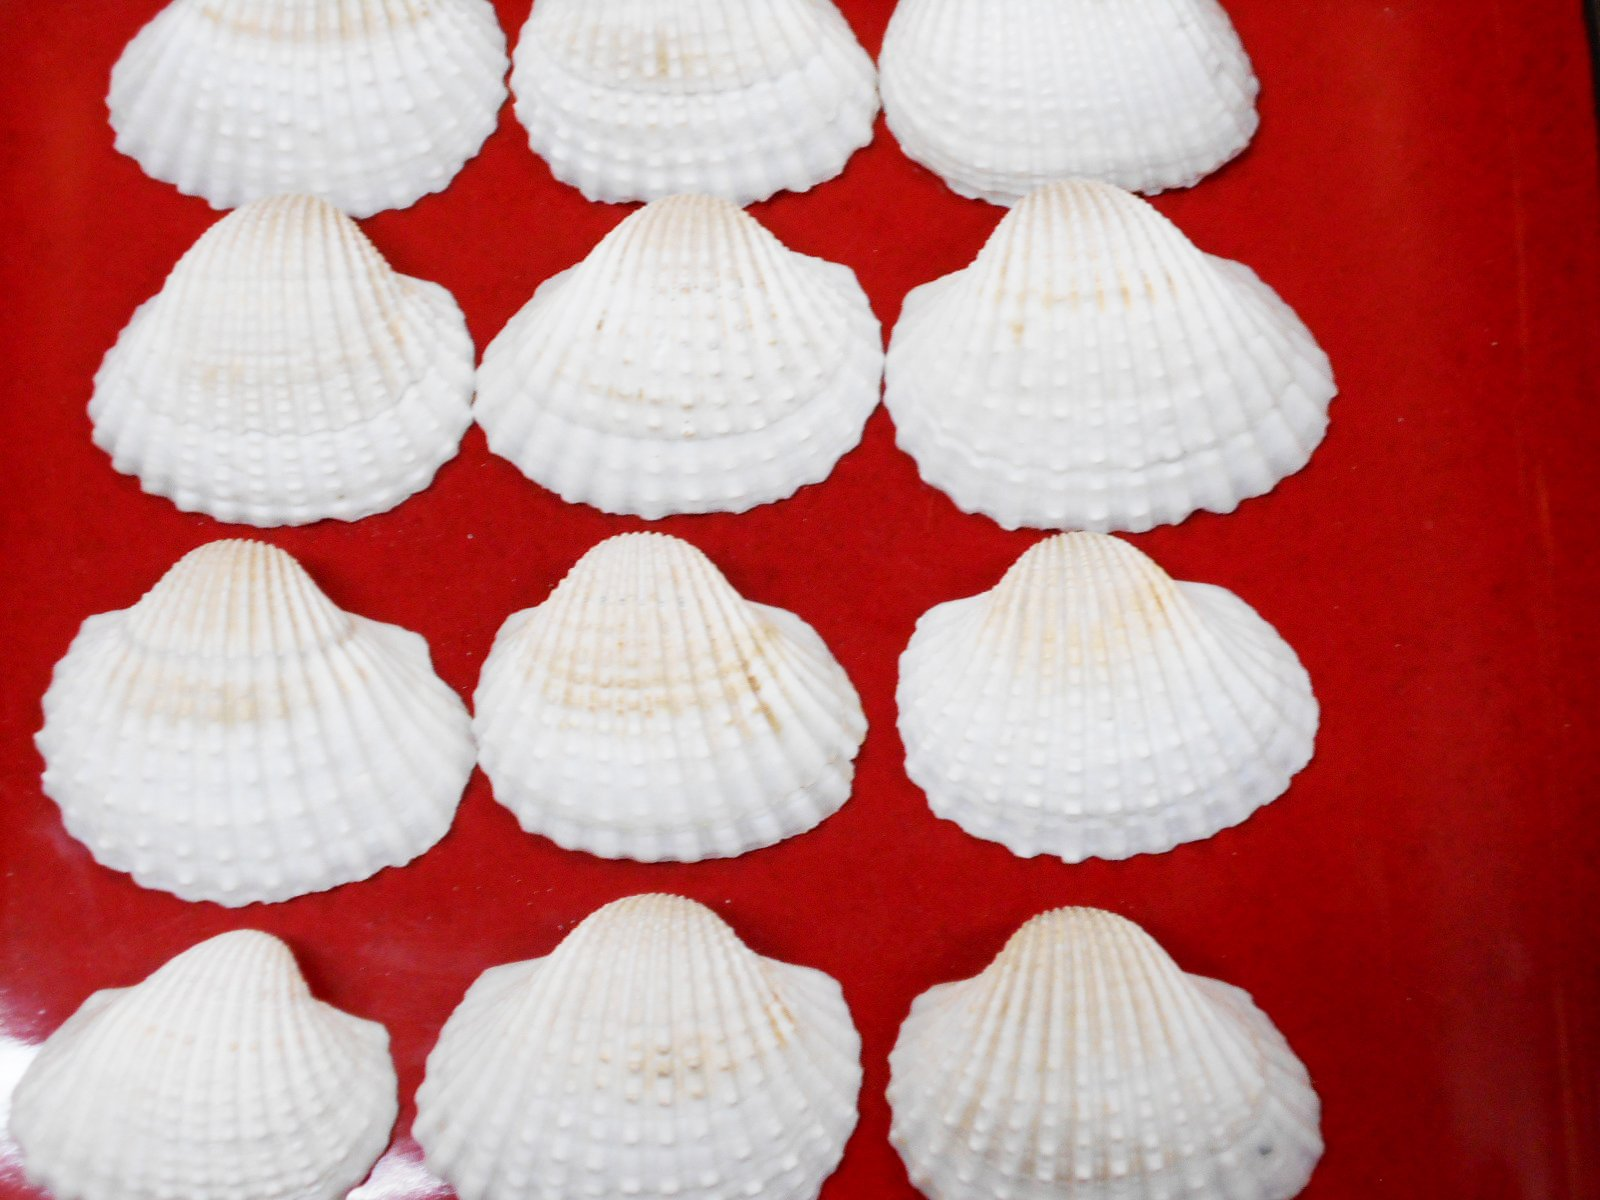 1/2lb (about 15) Large White Ark Shells Seashells (1 3/4'' - 2 1/4'') Beach Wedding Hobby Crafts by Florida Shells and Gifts (Image #2)